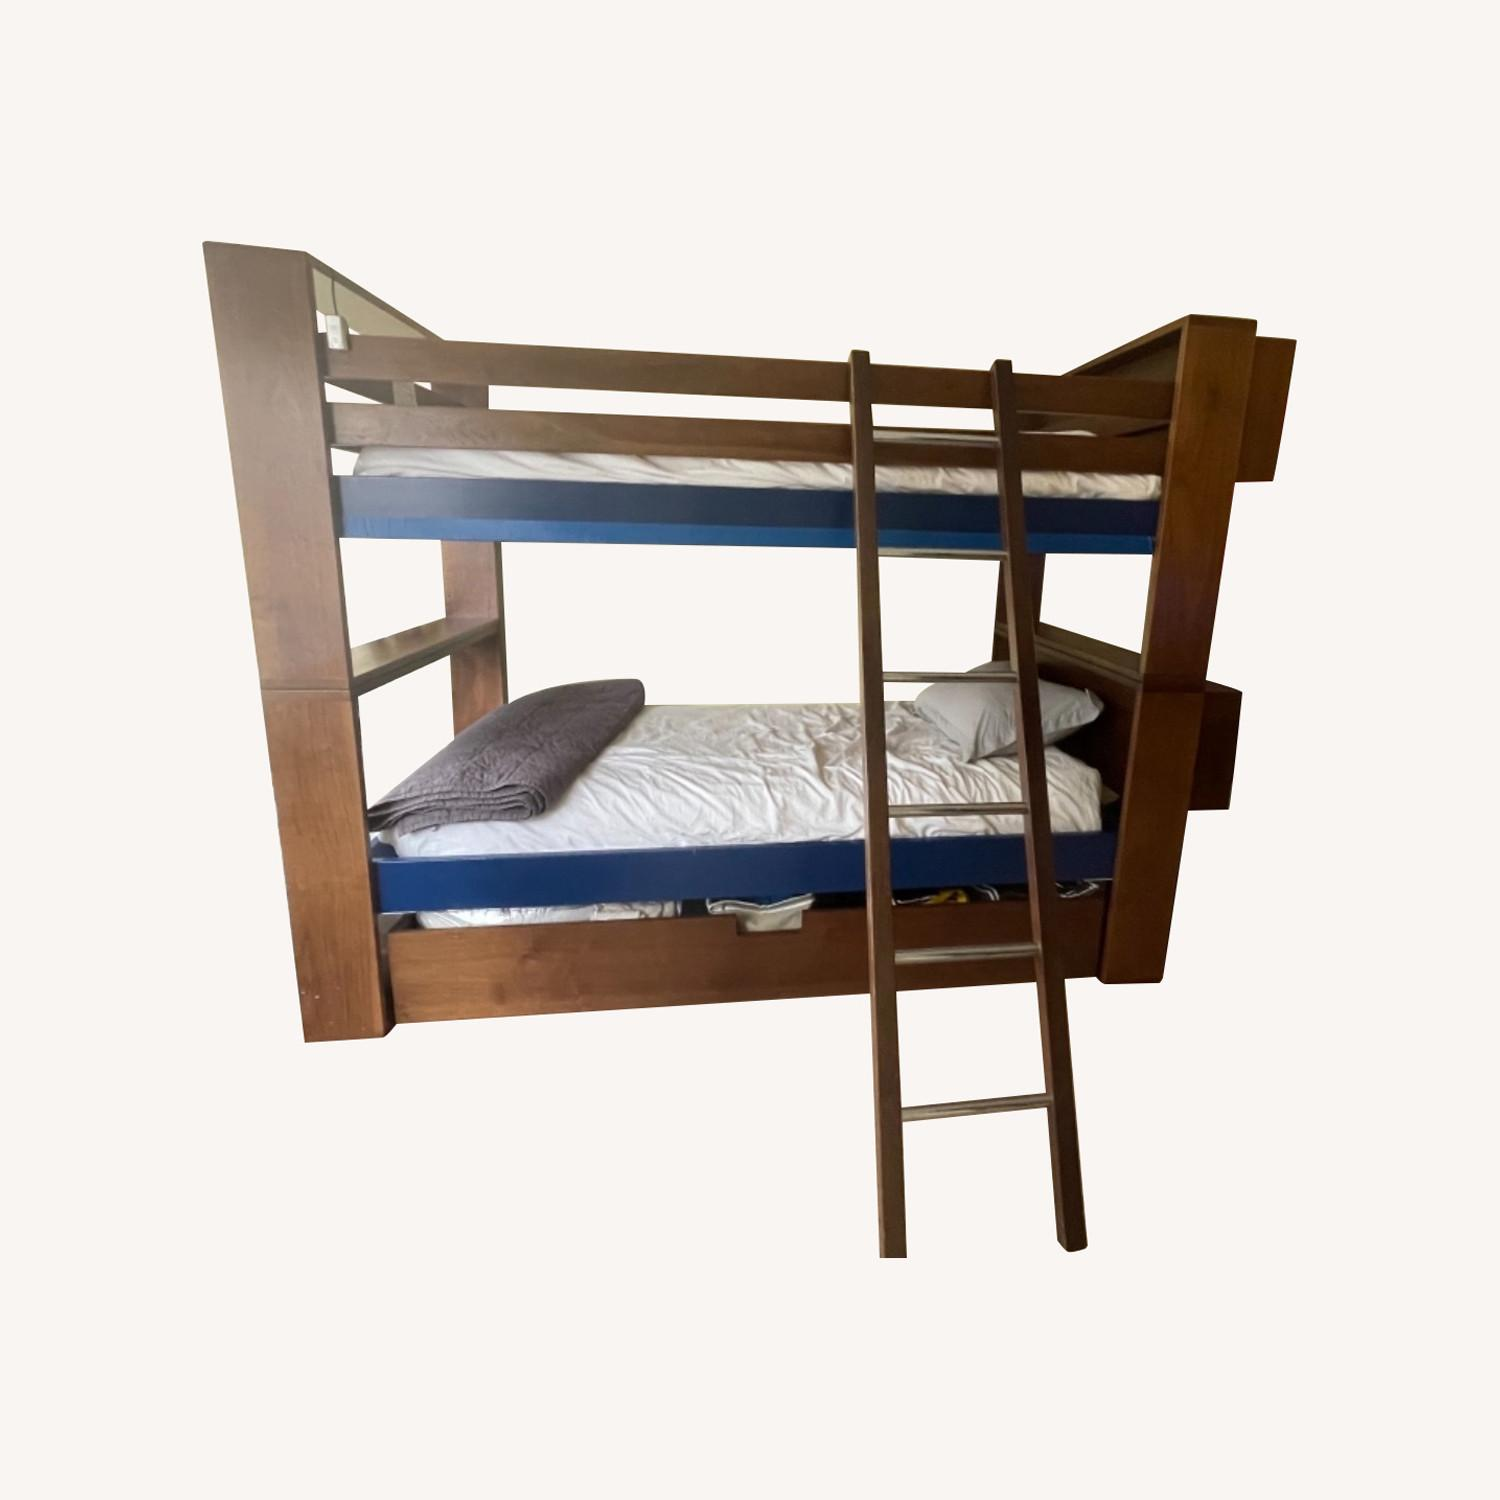 DucDuc Bunk Beds - image-0